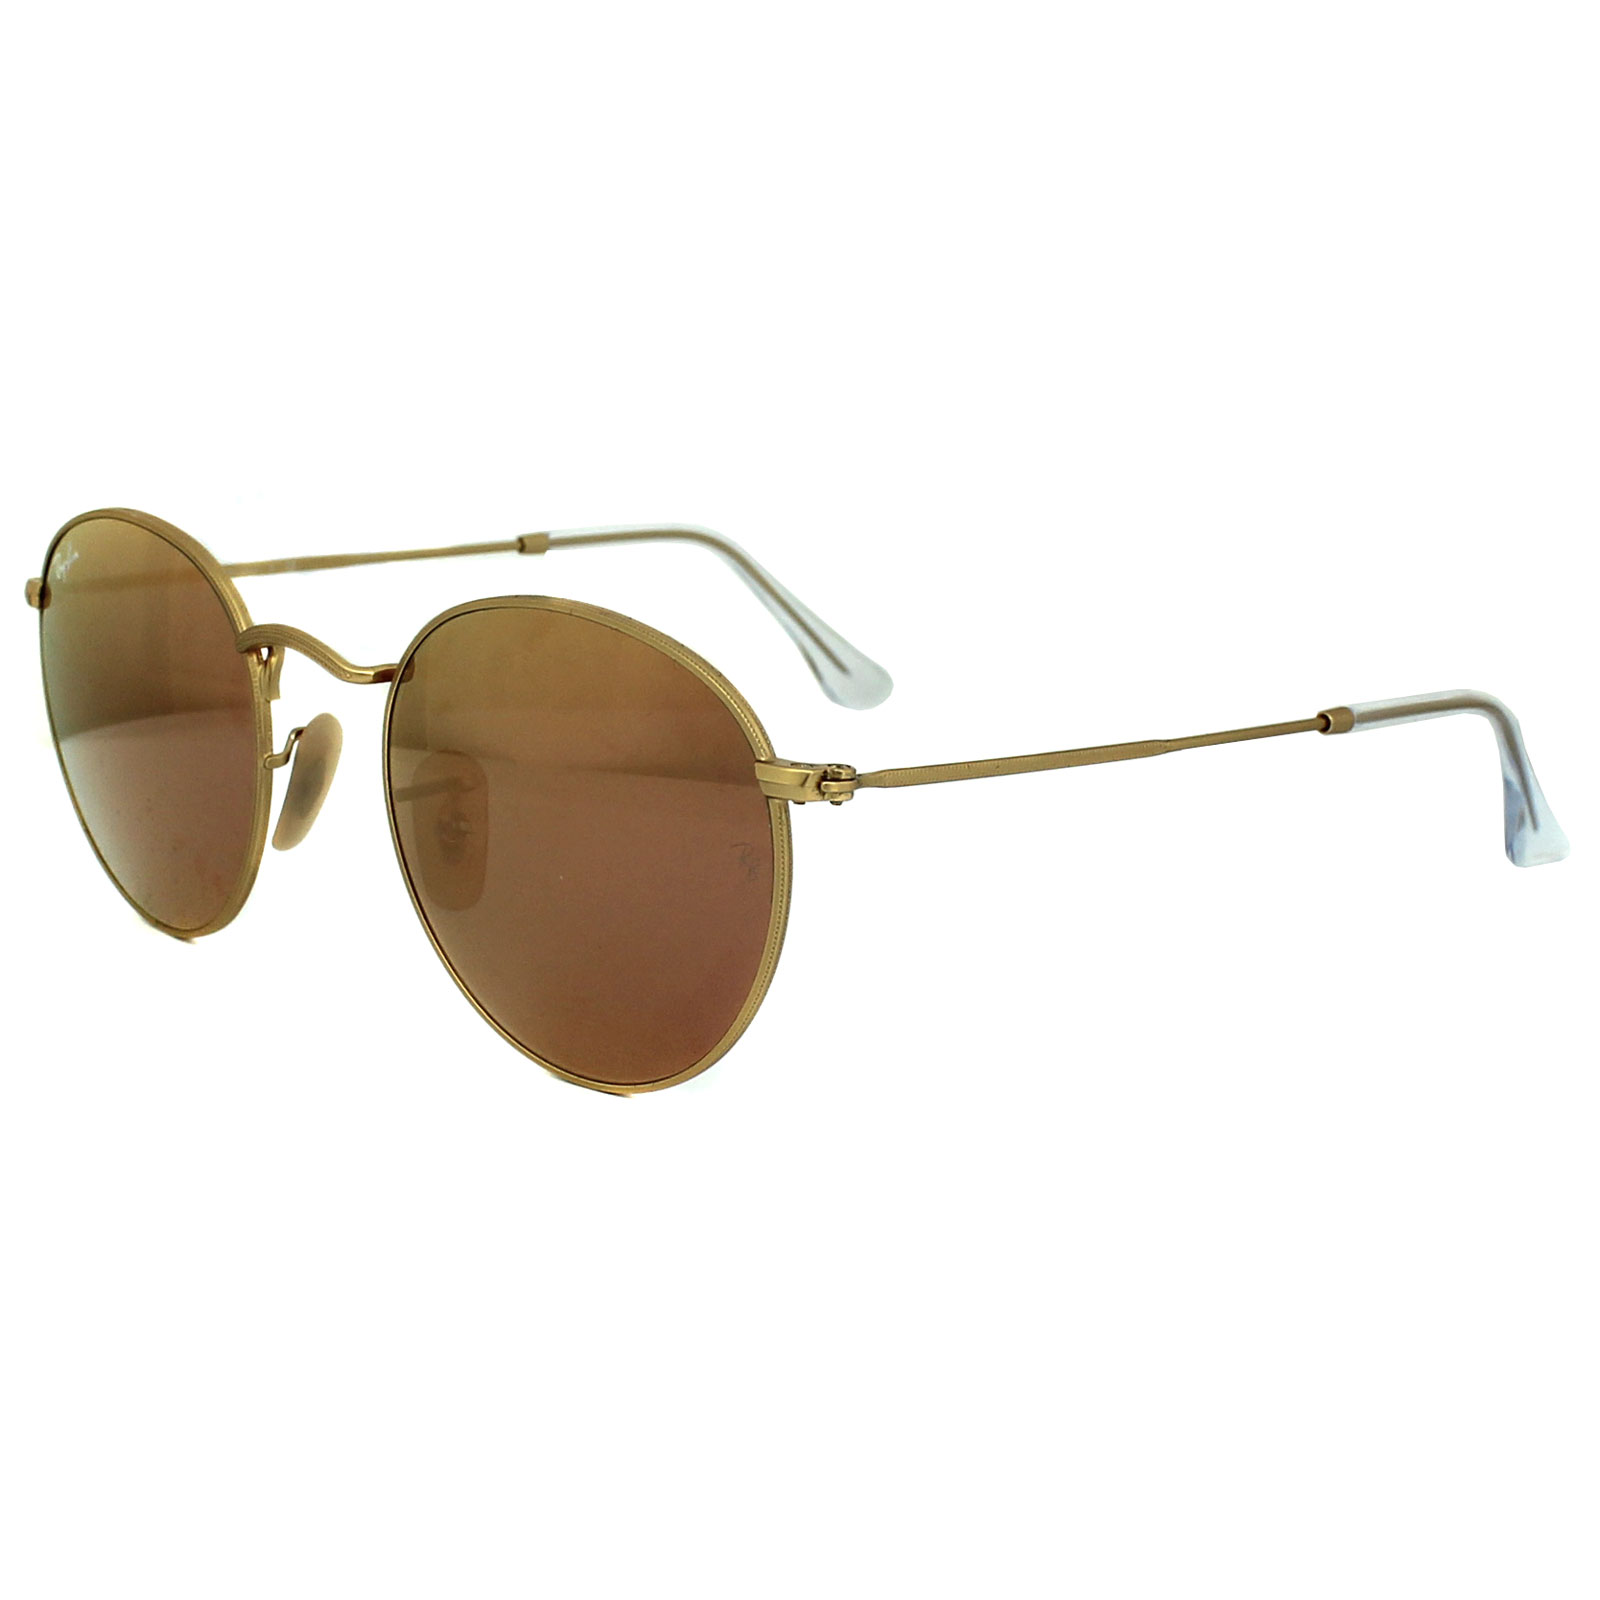 82a43c24a95 Sentinel Ray-Ban Sunglasses Round Metal 3447 112 Z2 Gold Copper Flash  Mirror M